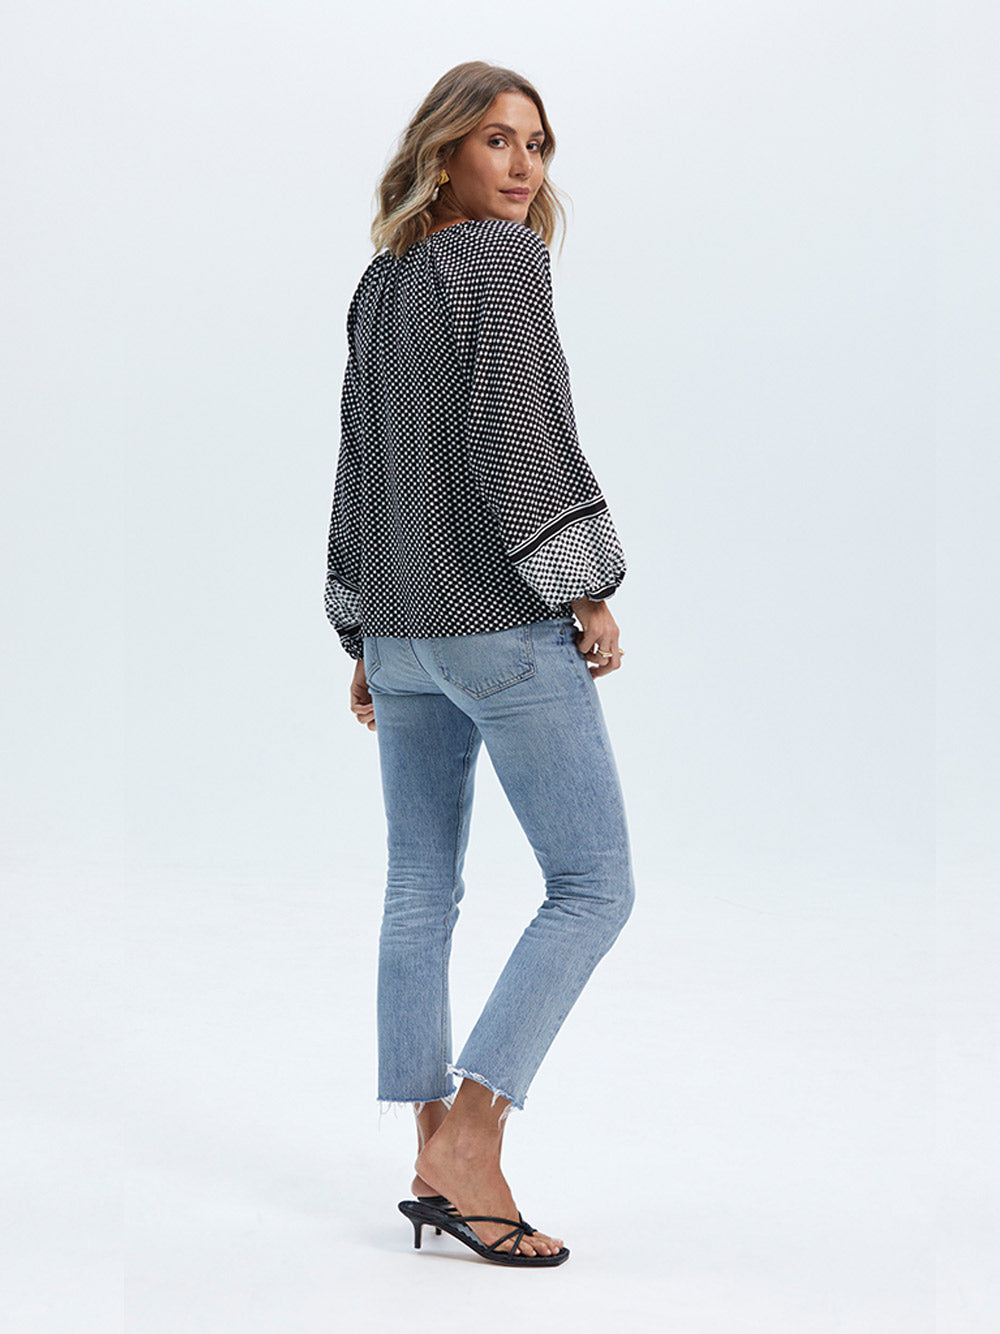 STAPLE THE LABEL Impression Blouse